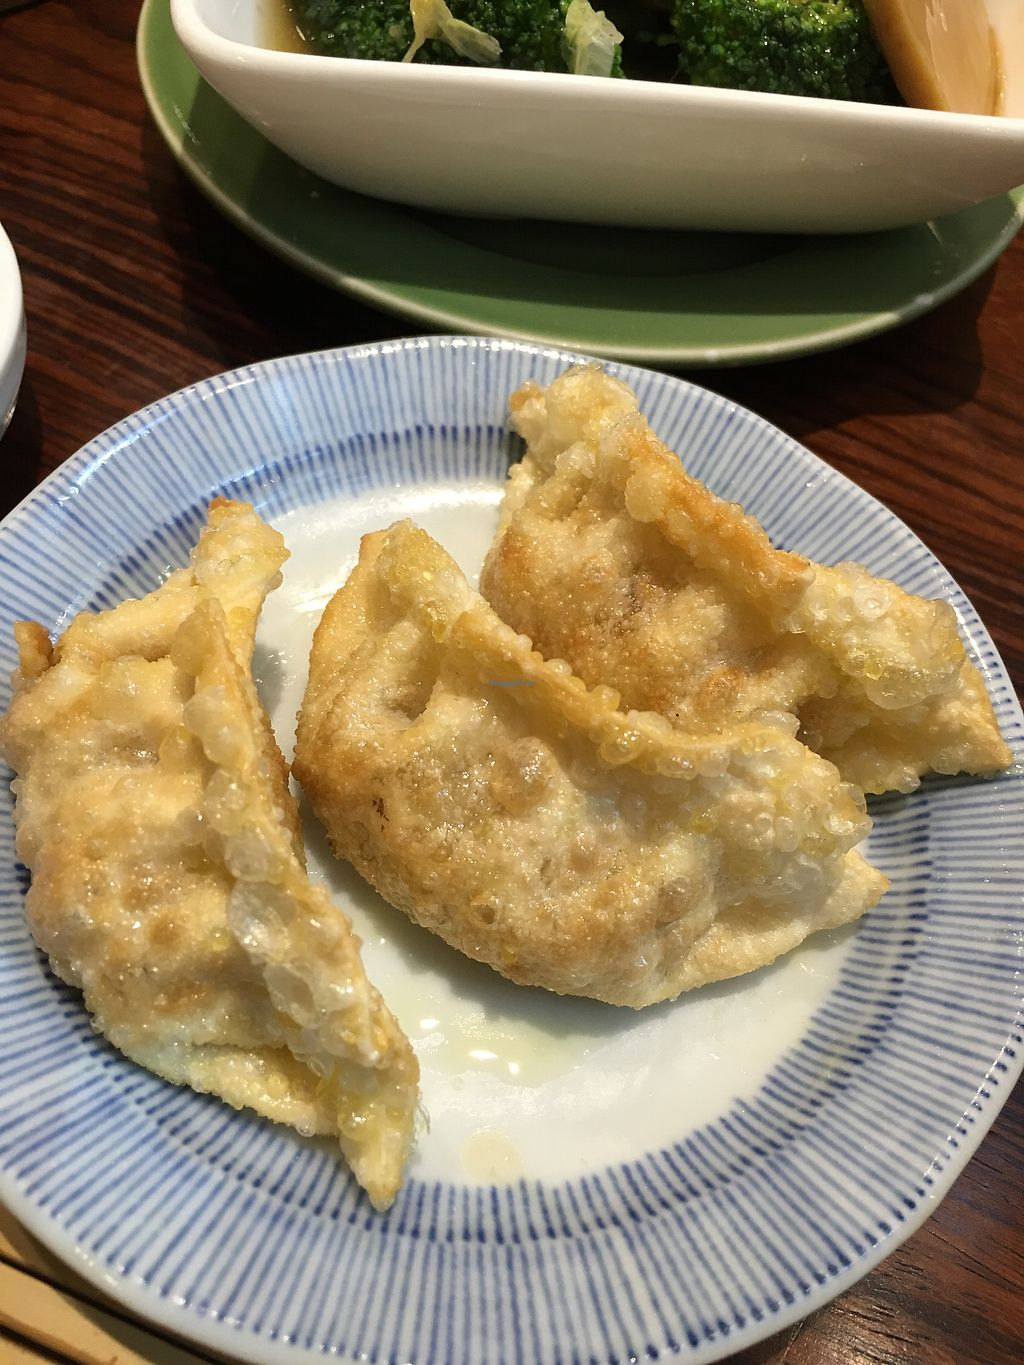 "Photo of LockCha Tea House  by <a href=""/members/profile/Veg4Jay"">Veg4Jay</a> <br/>Deep Fried Assorted Vegetable Dumplings <br/> April 11, 2018  - <a href='/contact/abuse/image/11069/383735'>Report</a>"